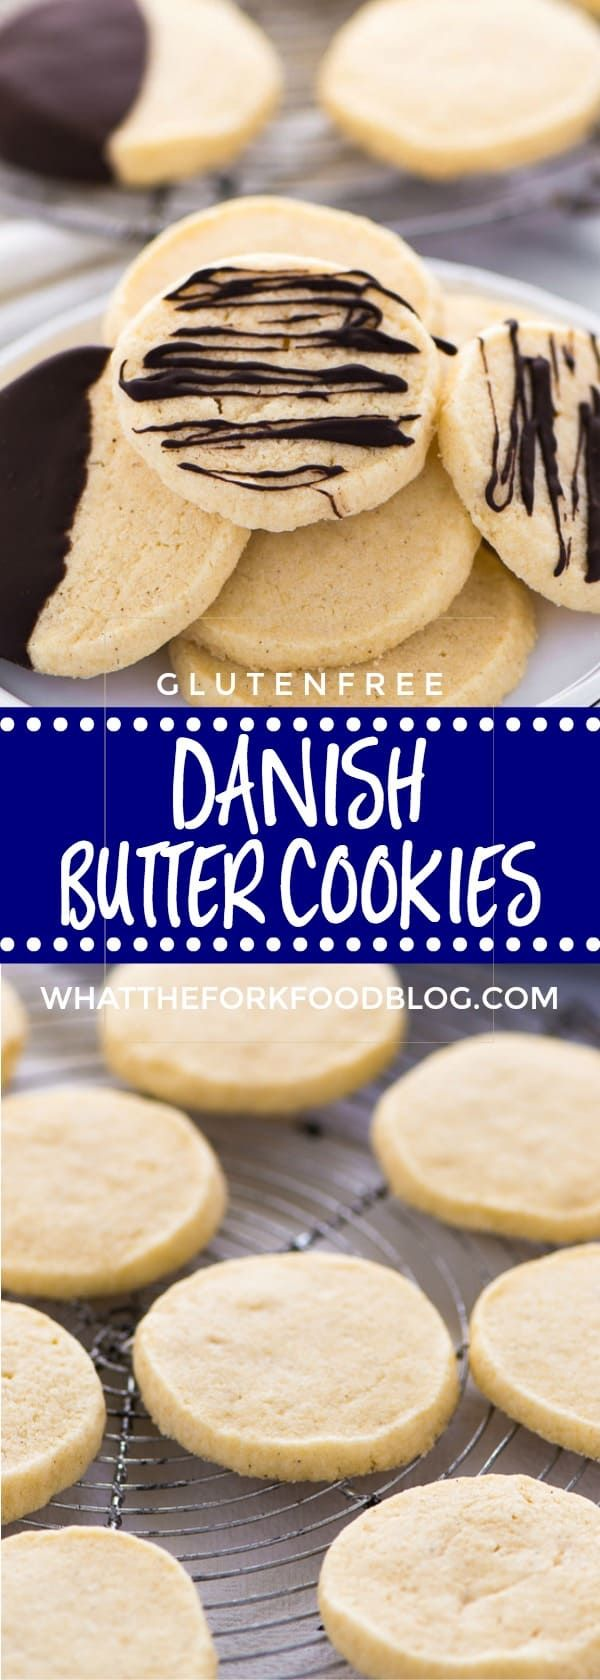 These gluten free Danish Butter Cookies make the perfect homemade holiday gift. Dip them in chocolate or leave them plain! They're great any time of the year too. Recipe from @whattheforkblog | whattheforkfoodblog.com | gluten free baking | gluten free cookie recipes | gluten free desserts | Christmas cookies | holiday baking | easy cookie recipes | slice and bake cookies | #glutenfree #glutenfreecookies #glutenfreerecipes #easyrecipes #cookies #Christmas #chocolate